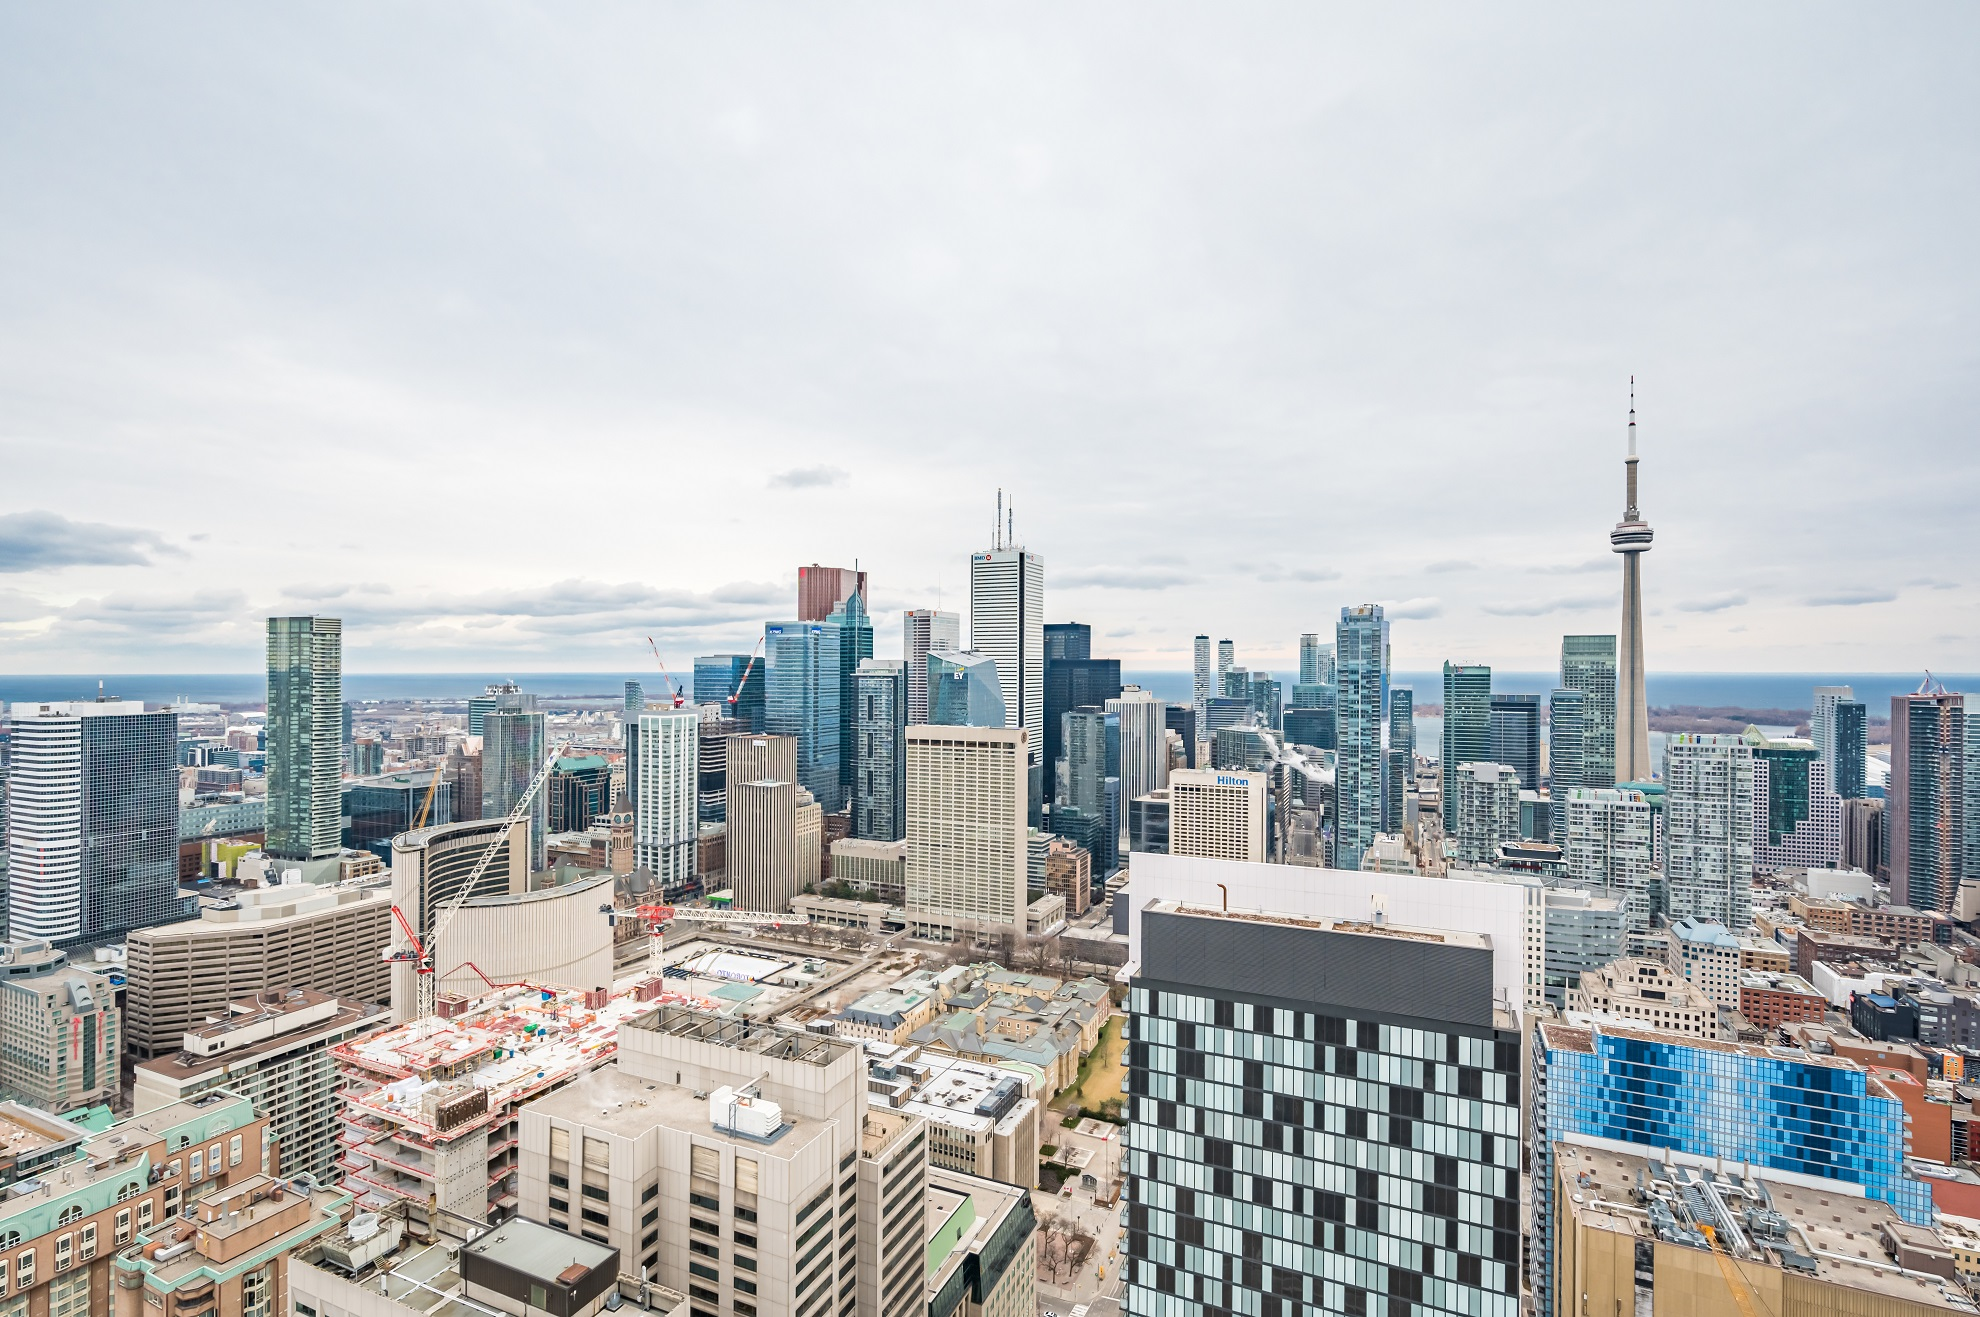 Toronto skyline showing importance of location to case study.